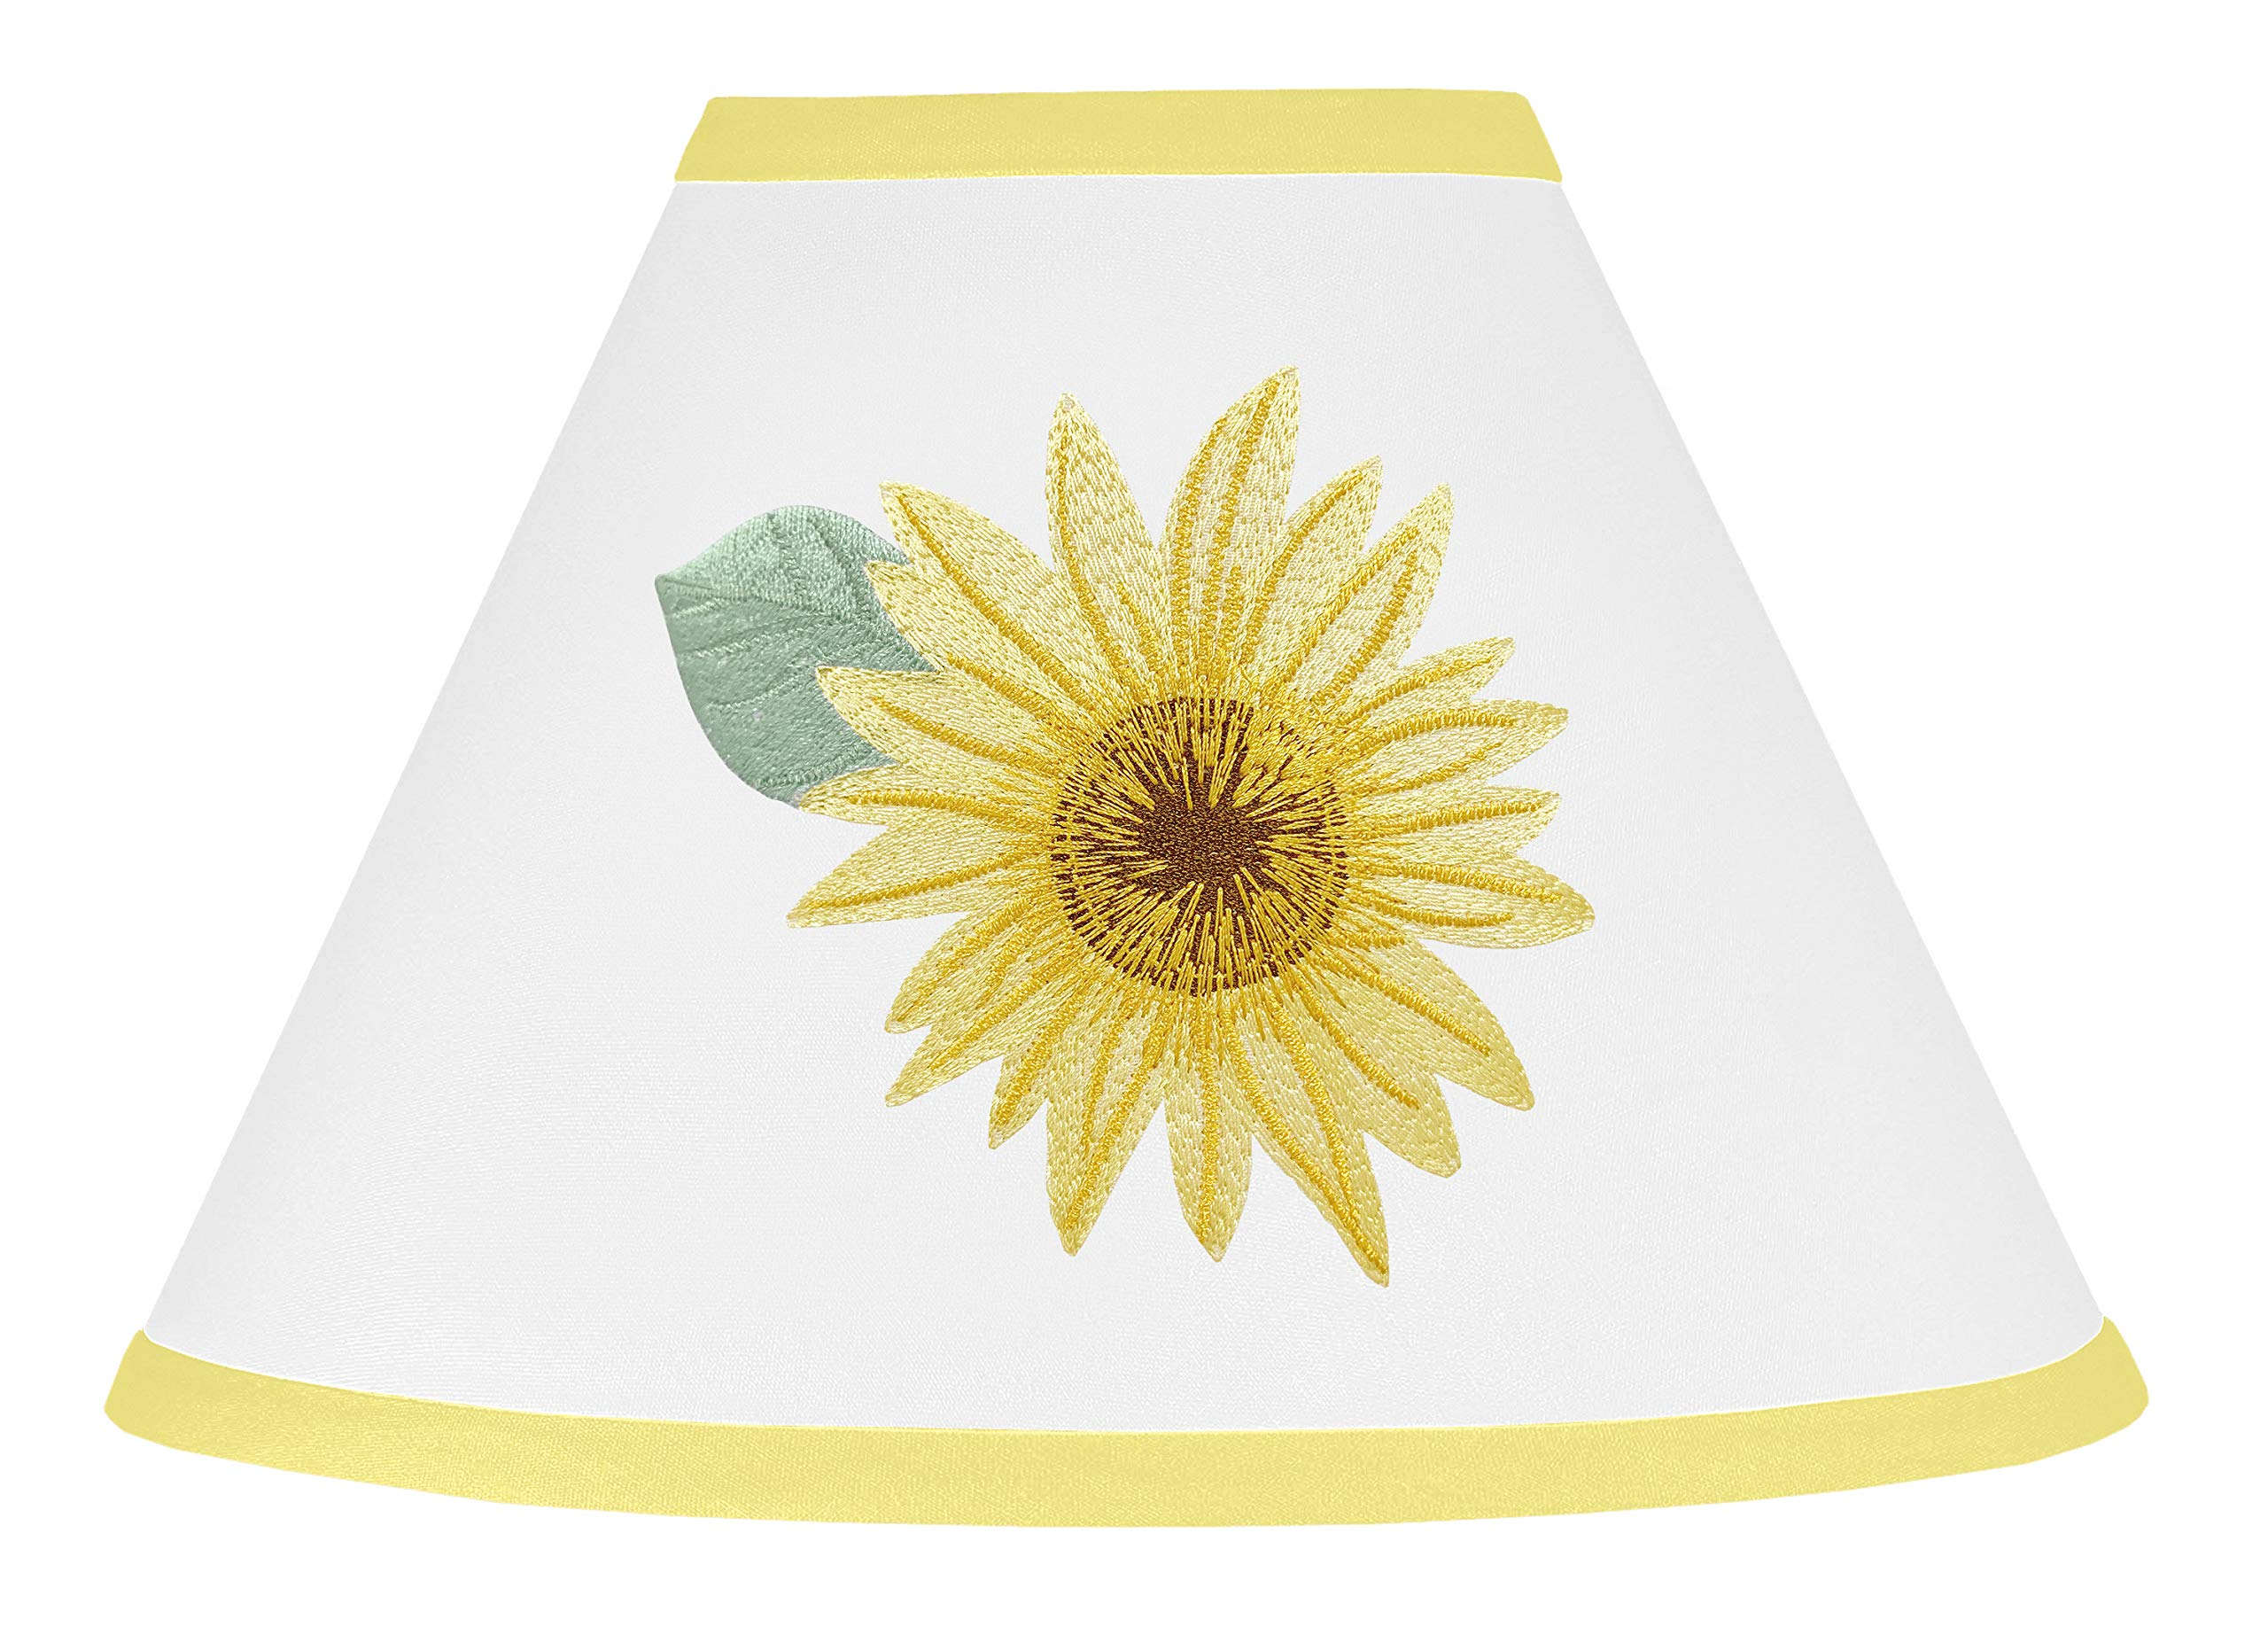 Sweet Jojo Designs Lamp Shade, Farmhouse Watercolor Flower, Yellow/Green and White Sunflower Boho Floral by Sweet Jojo Designs